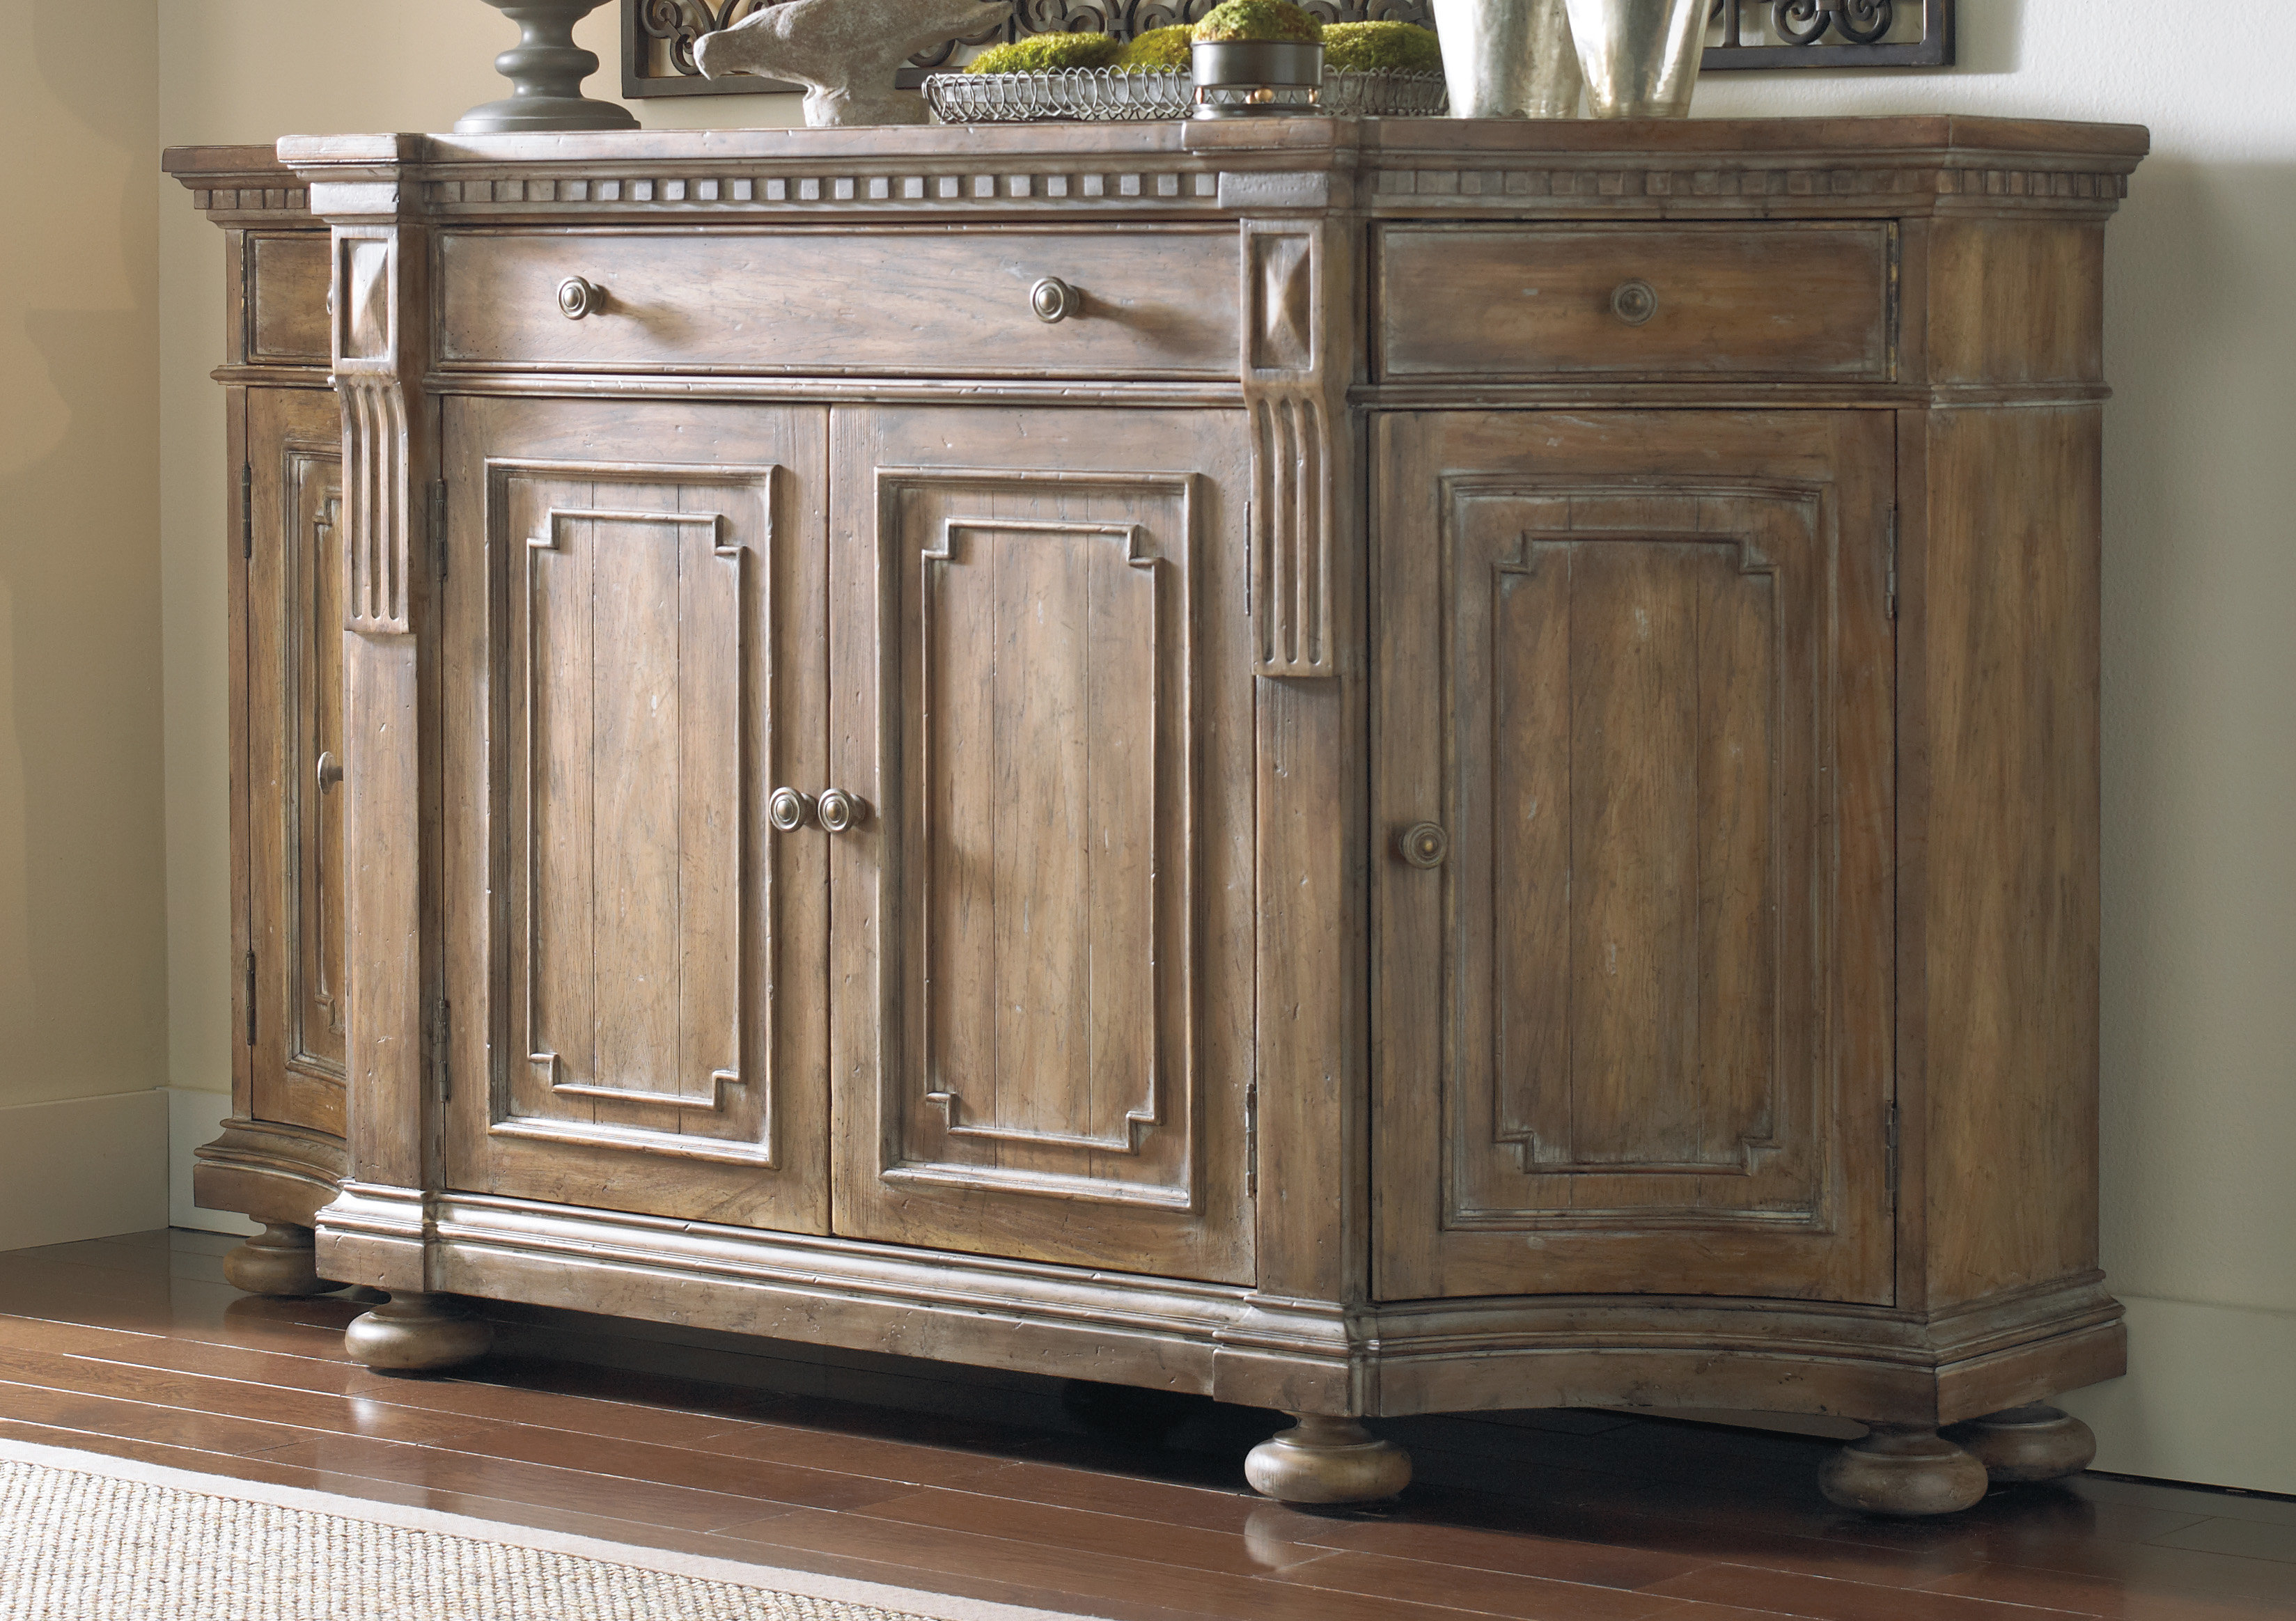 Farmhouse & Rustic Hooker Furniture Sideboards & Buffets Pertaining To Best And Newest Seven Seas Asian Sideboards (View 11 of 20)